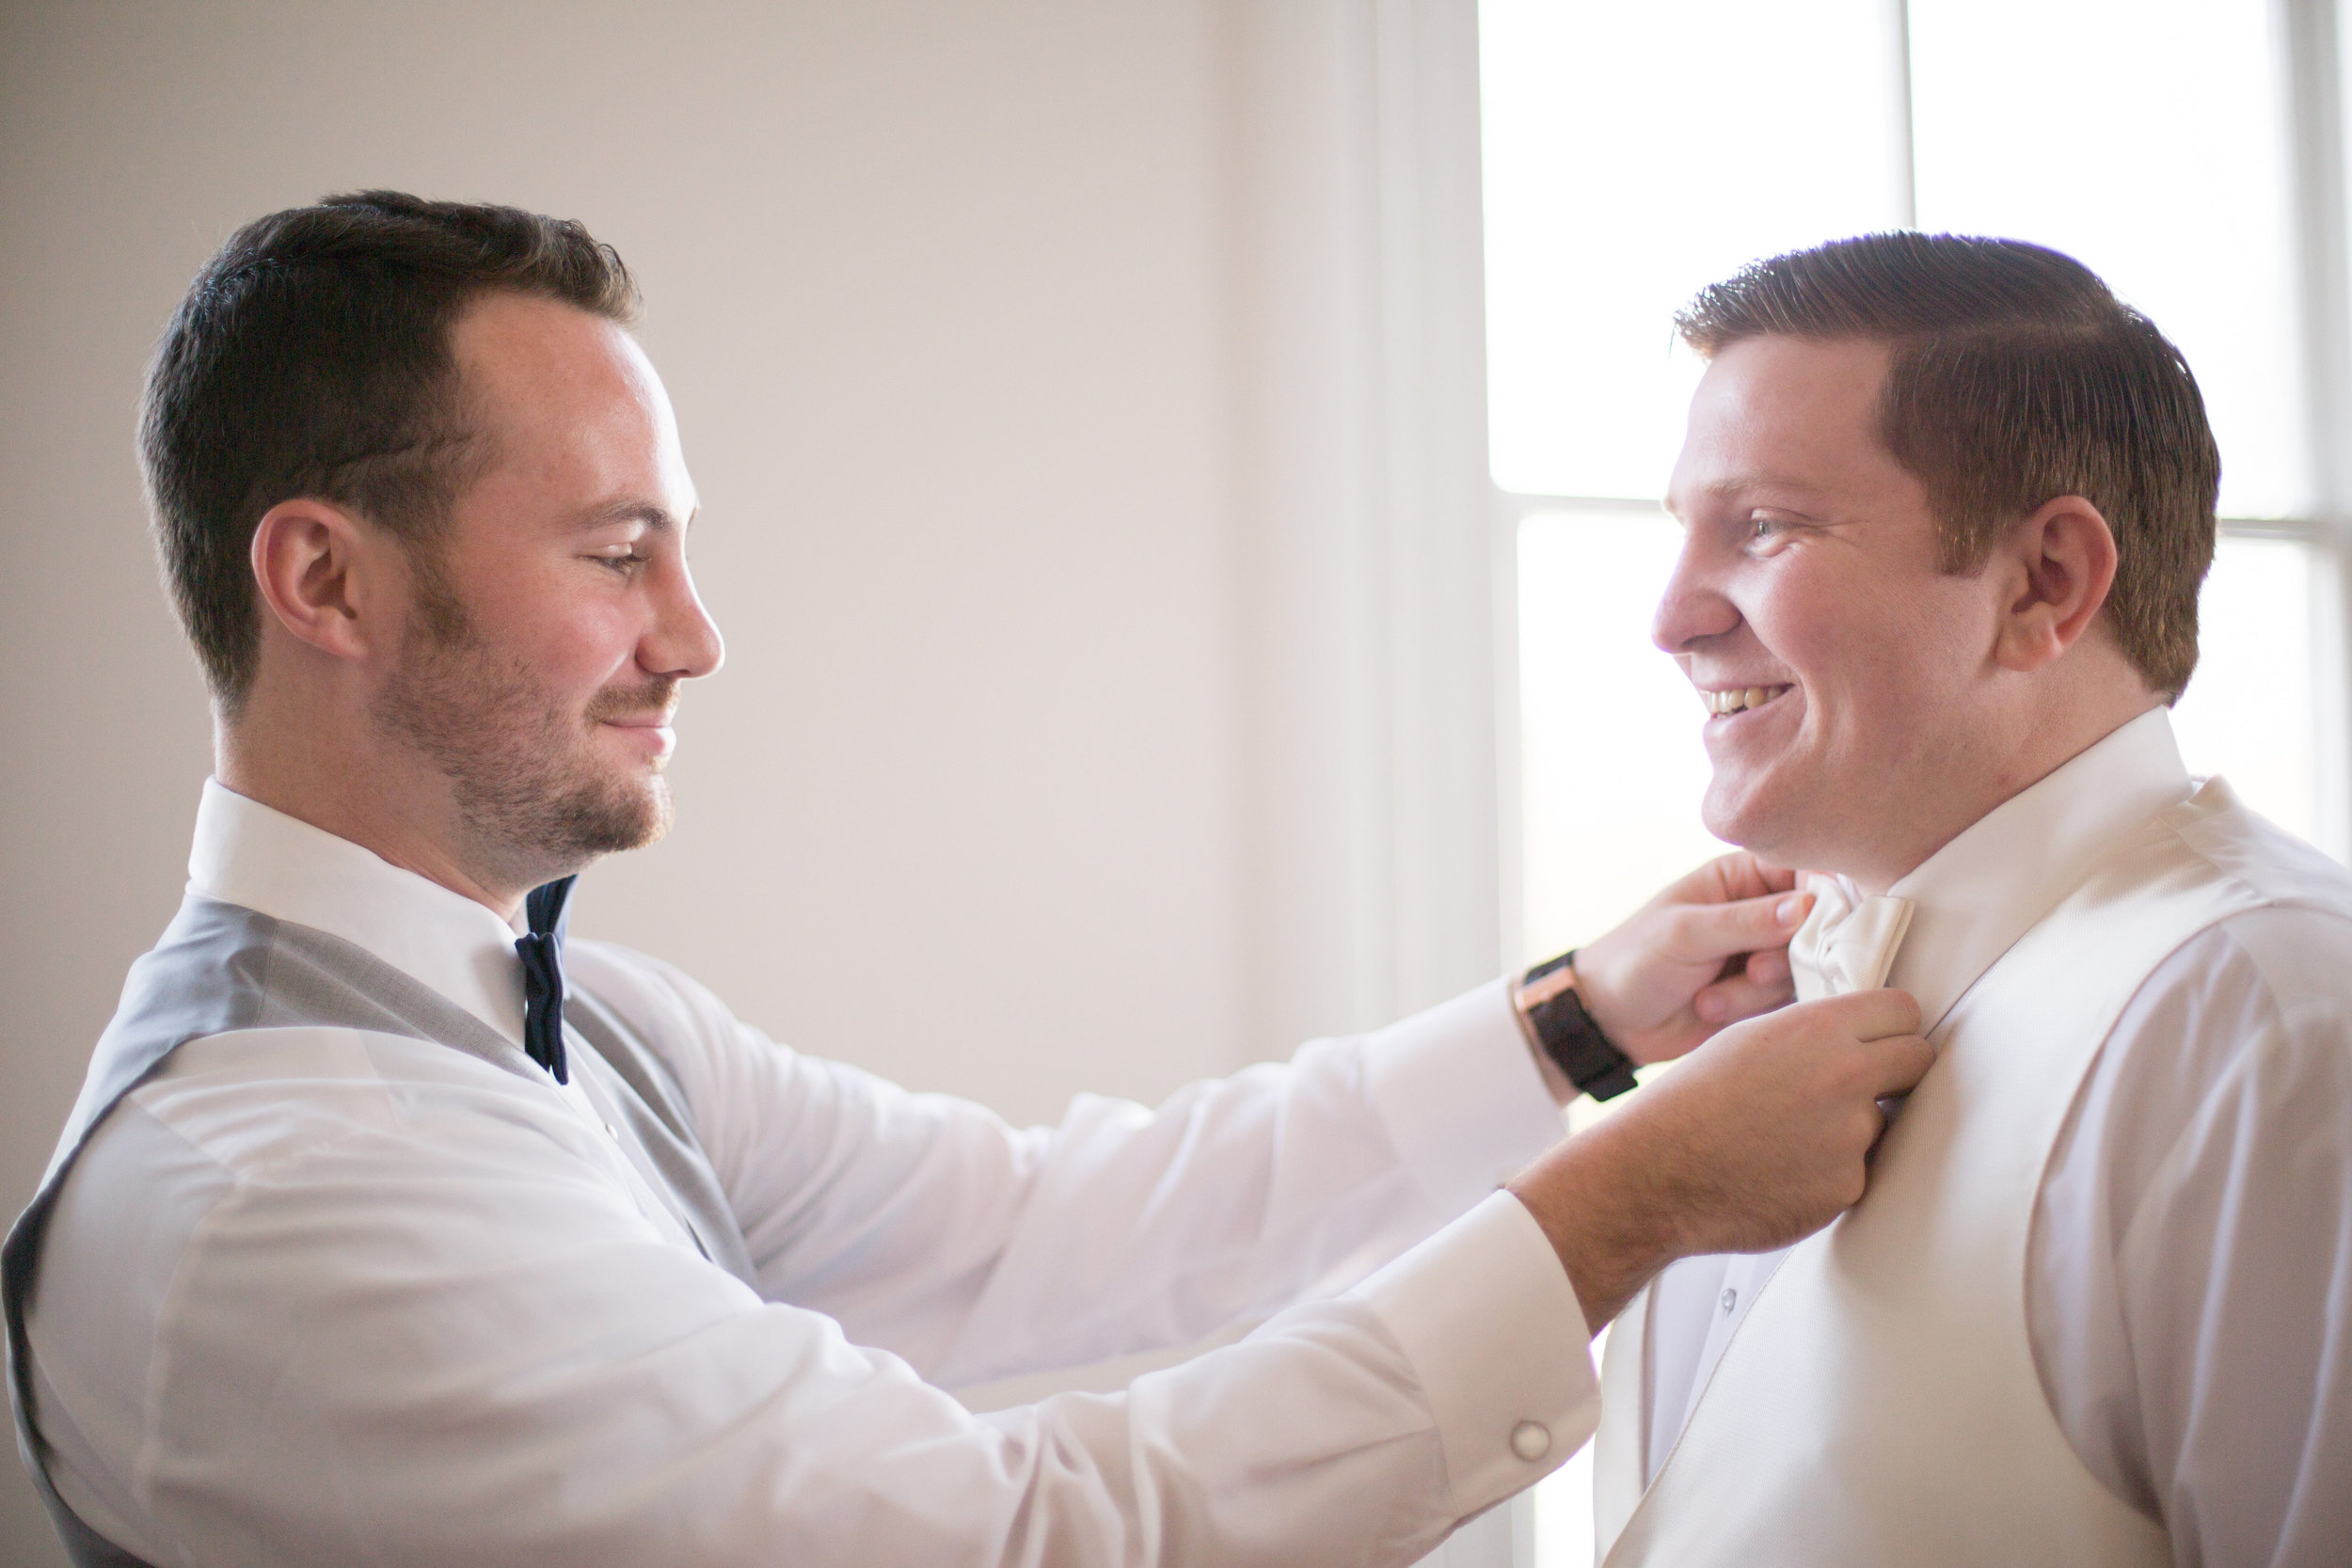 a8b20-groomgettingreadyraleighweddinggroomgettingreadyraleighwedding.jpg